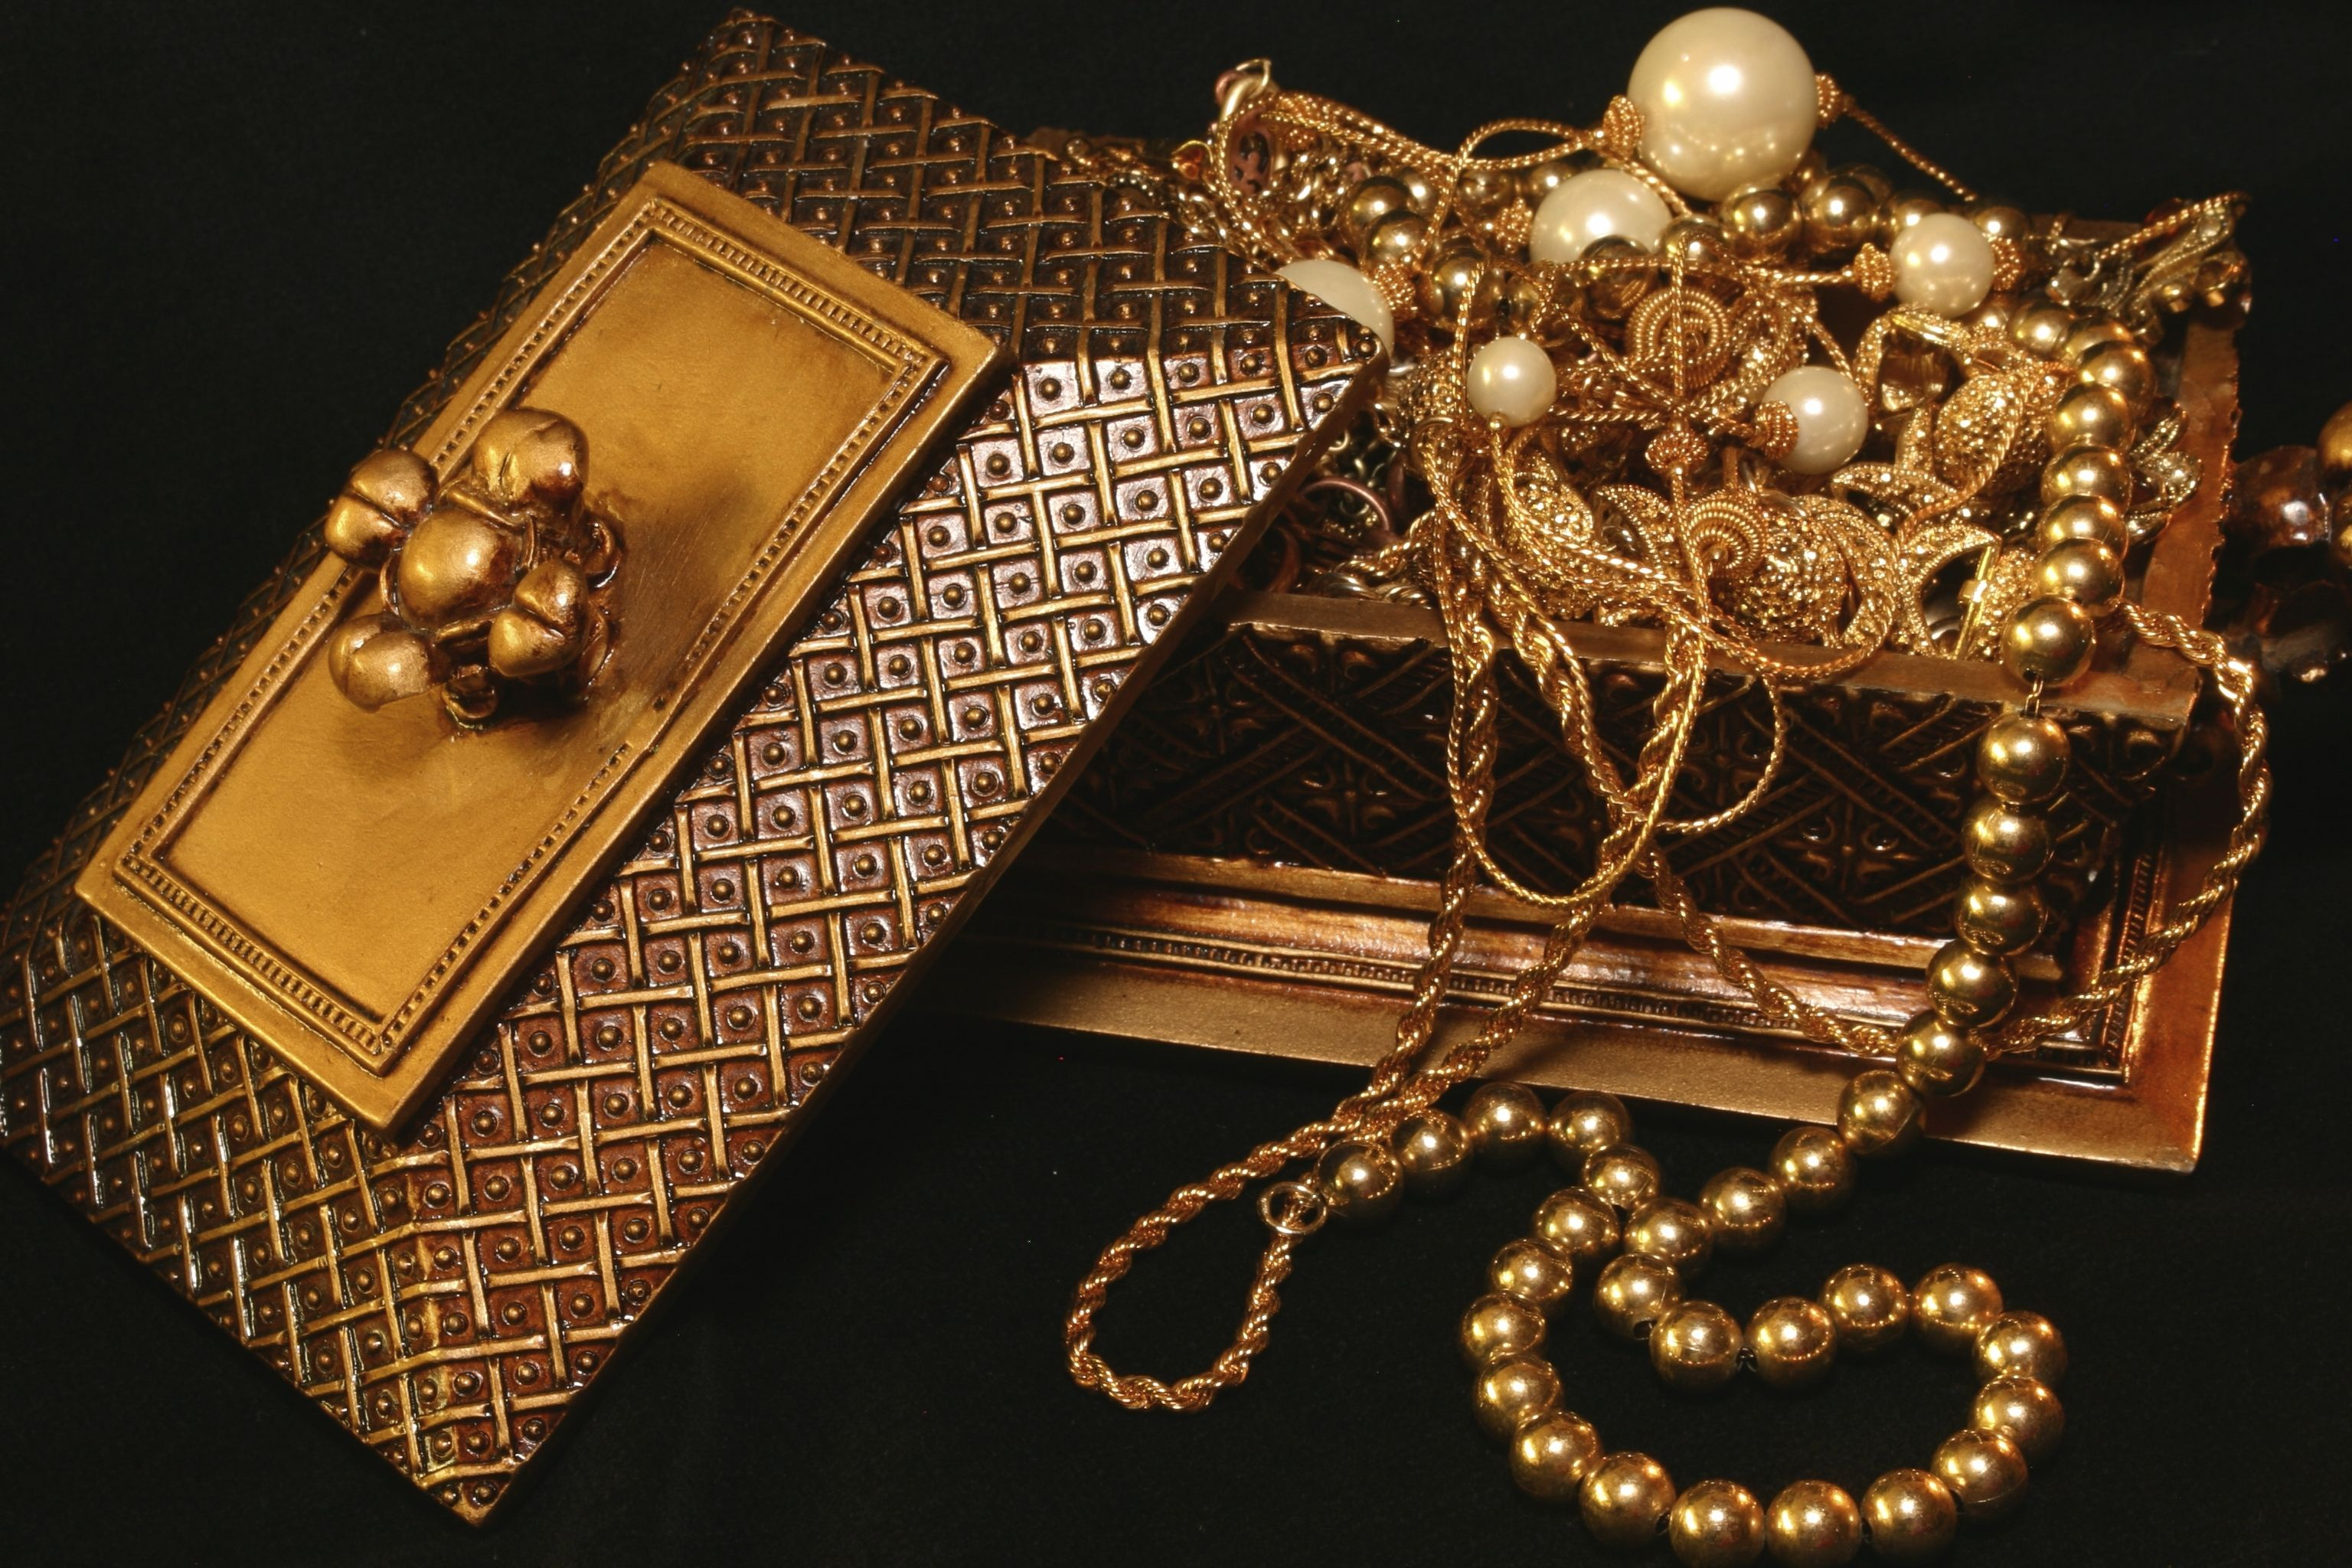 26+ Is this a good time to sell gold jewelry ideas